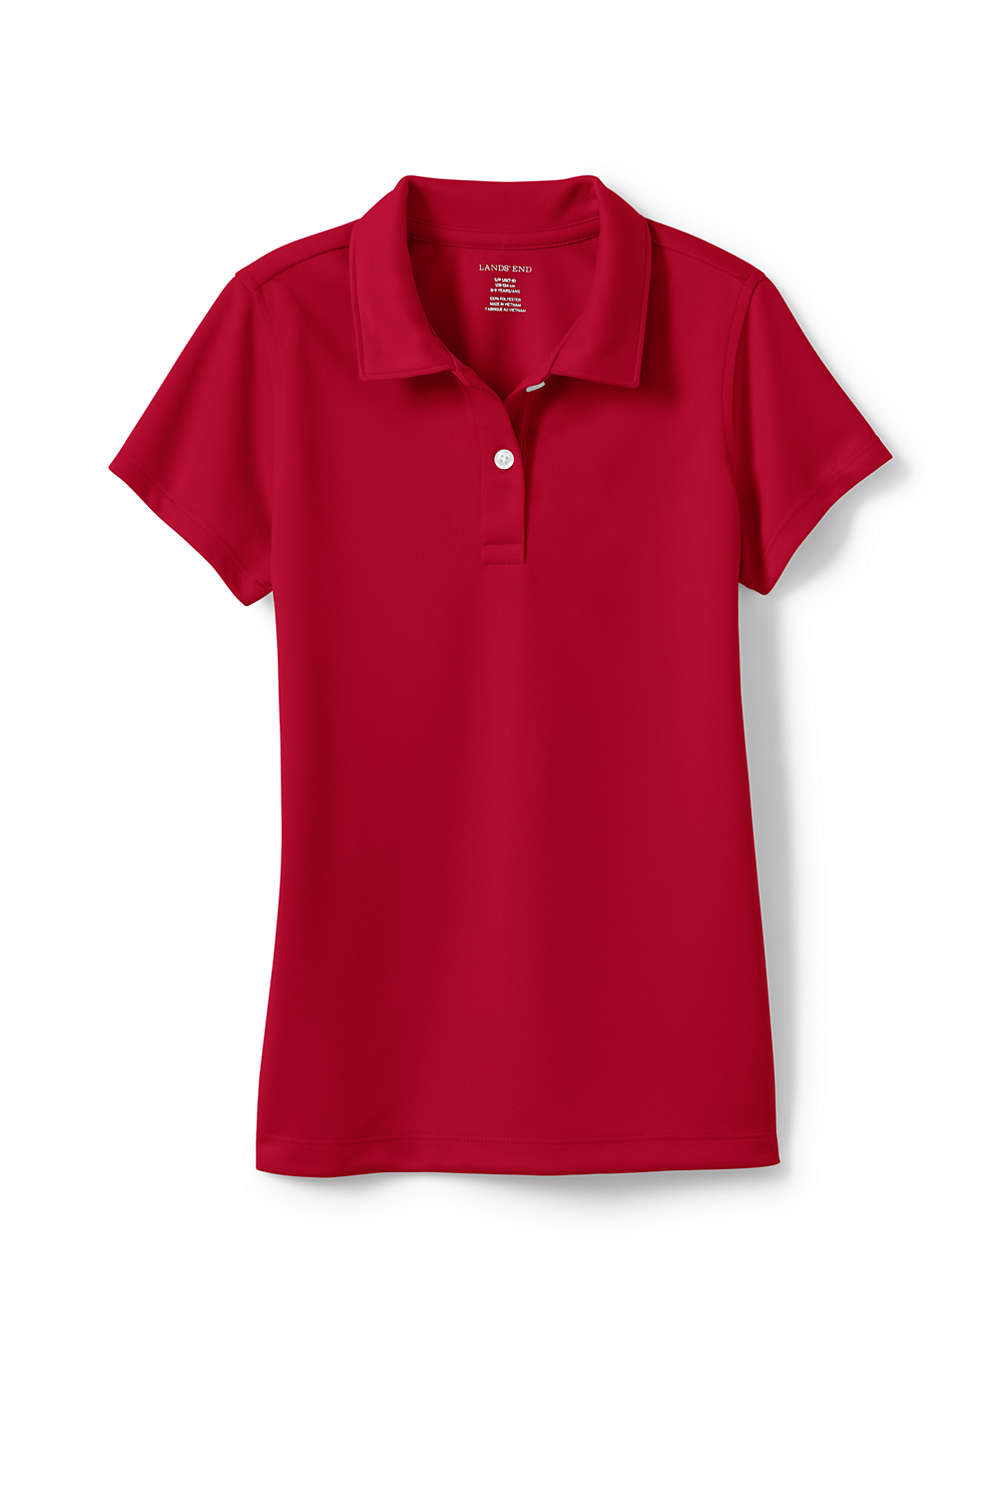 74a506d71 School Uniform Short Sleeve Poly Piqué Polo from Lands' End